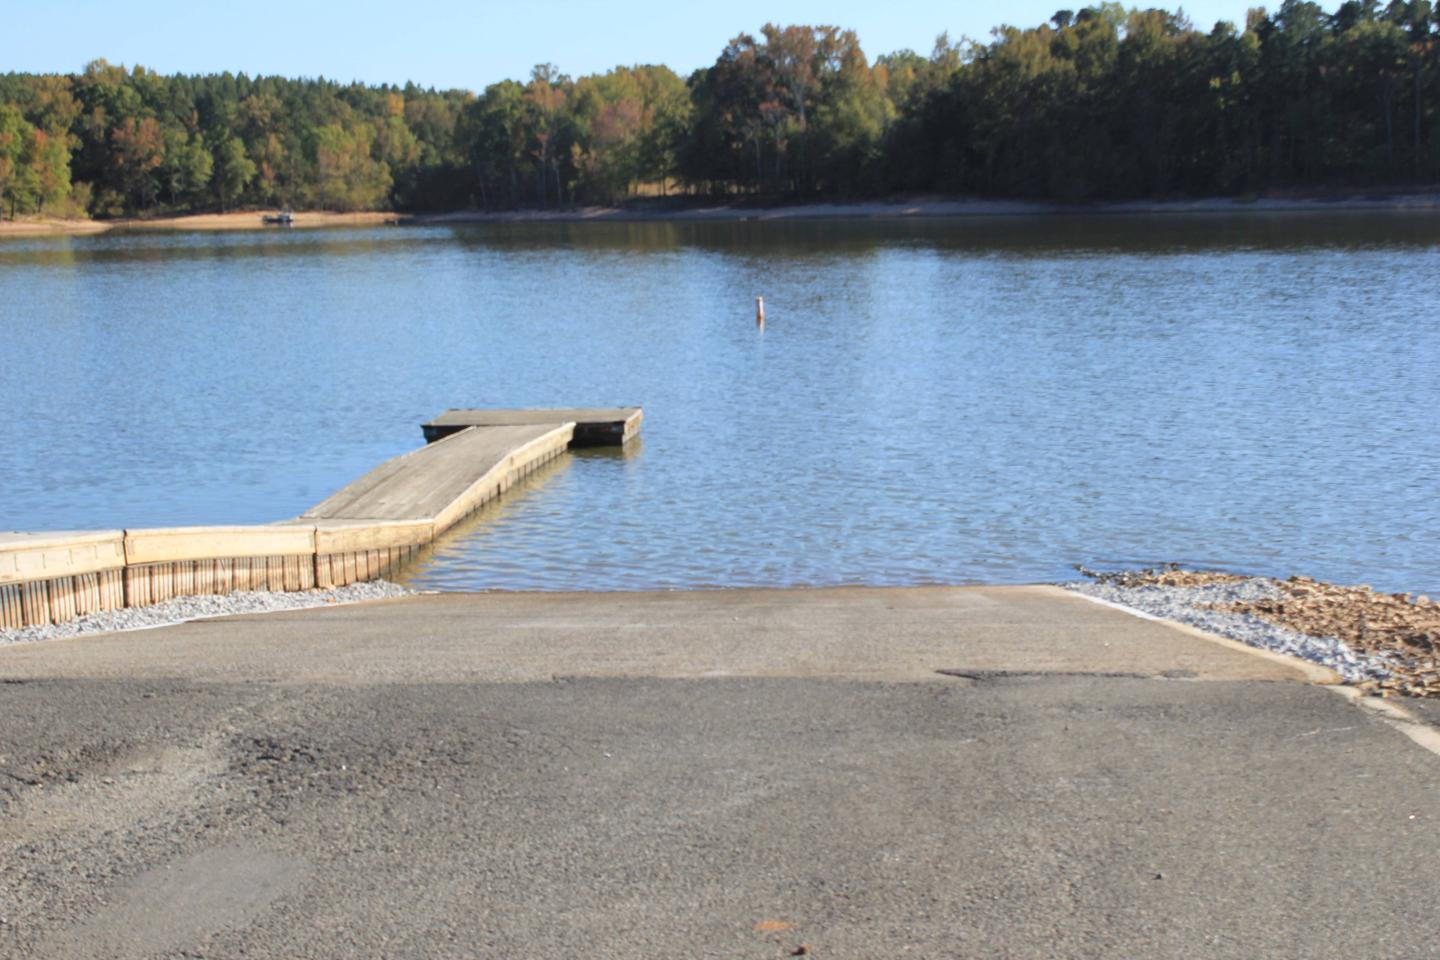 Buffalo Park Boat RampWelcome to Buffalo Park! This is the boat ramp here at the park.